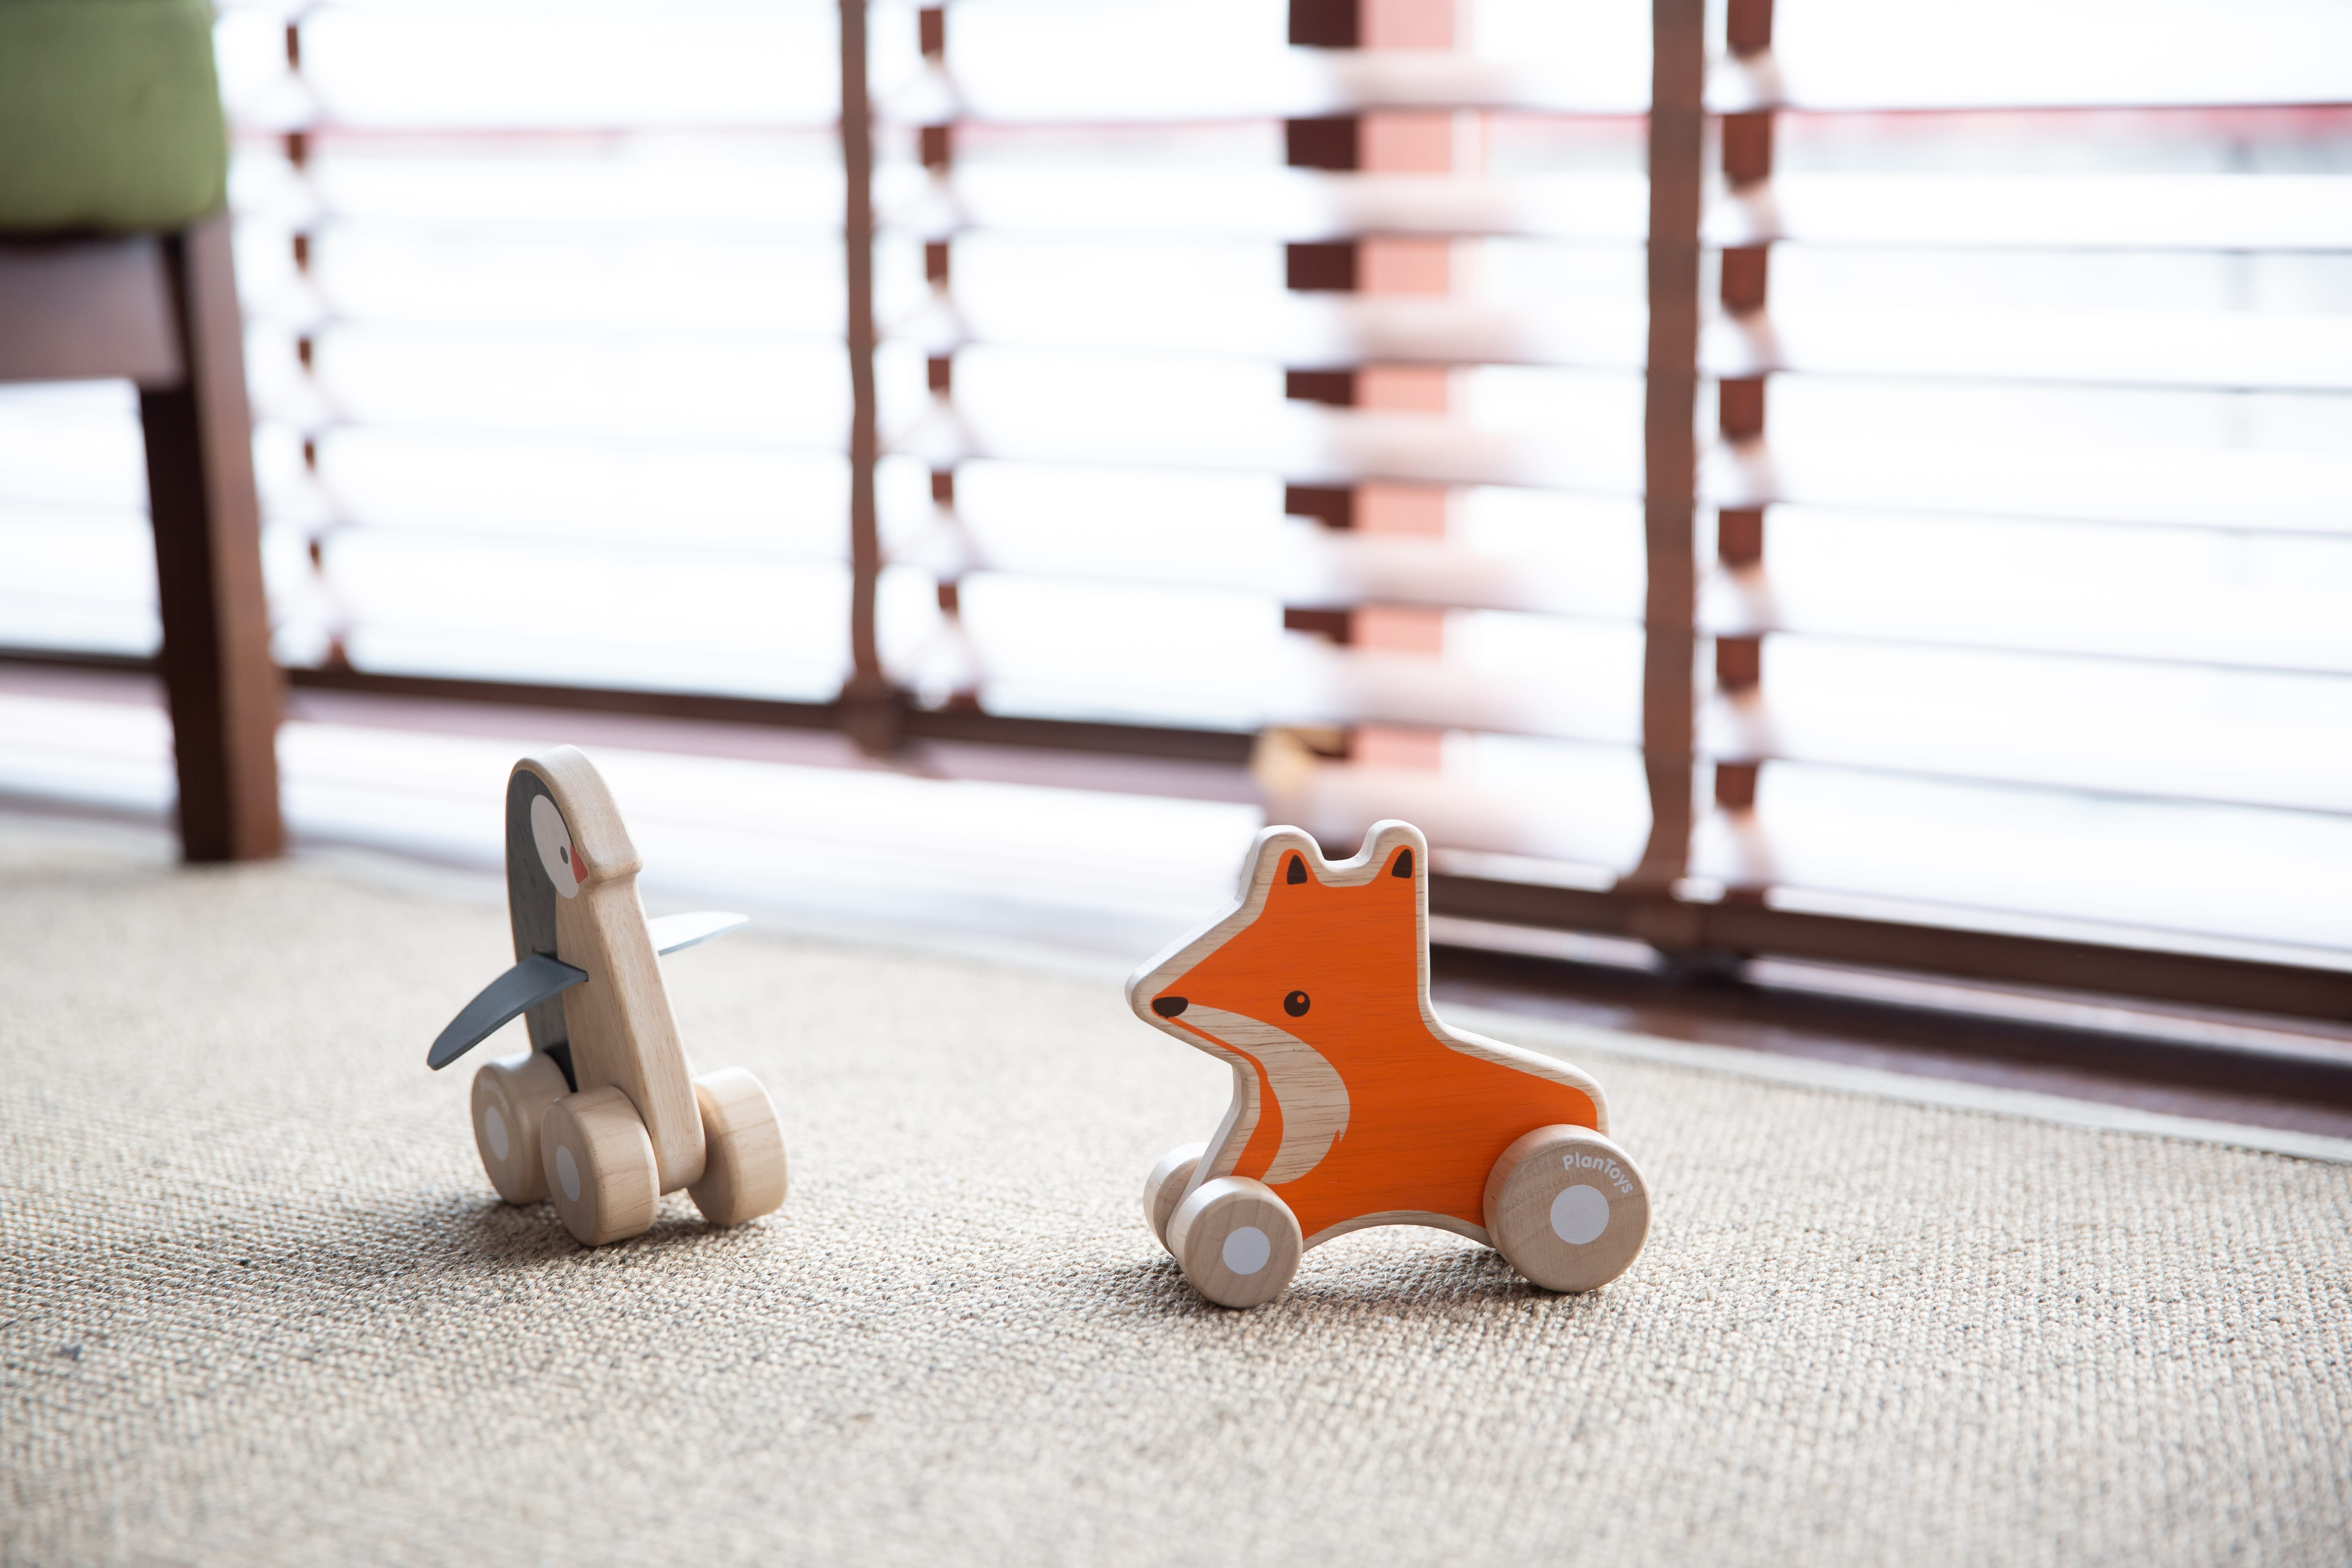 5444_PlanToys_PENGUIN_WHEELIE_Active_Play_Imagination_Coordination_Language_and_Communications_Fine_Motor_12m_Wooden_toys_Education_toys_Safety_Toys_Non-toxic_0.jpg